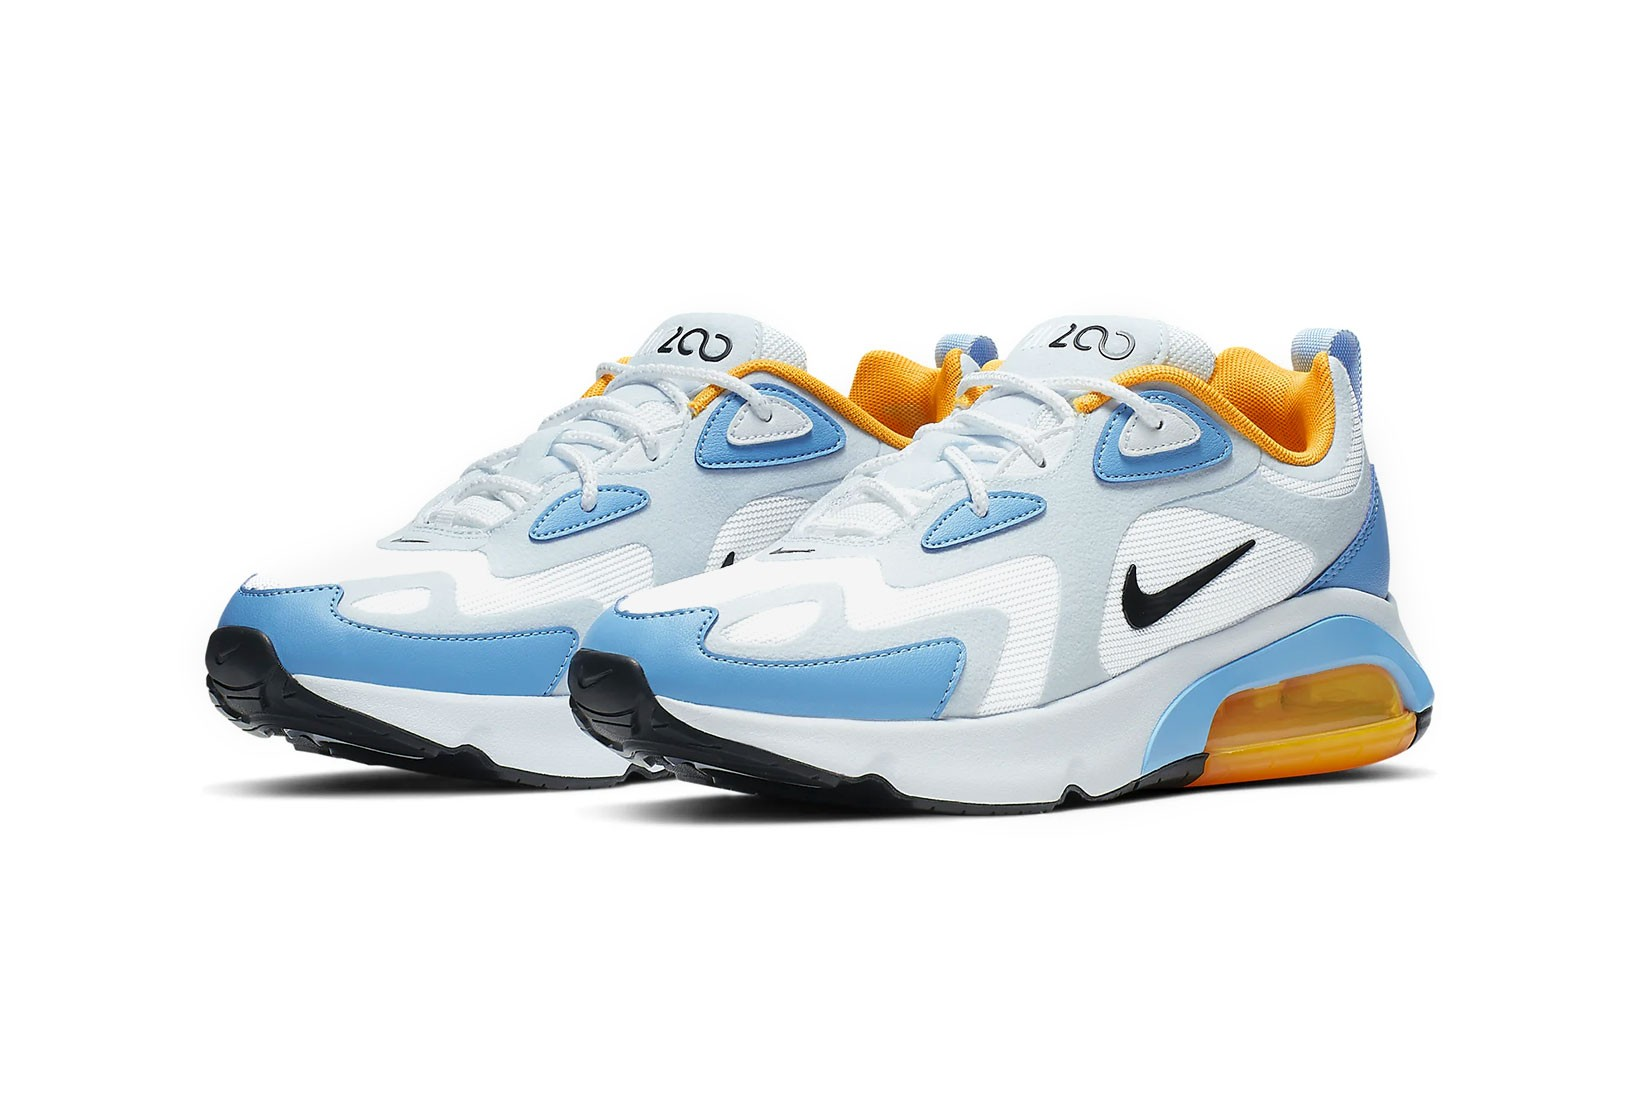 Nike's Air Max 200 9 Different